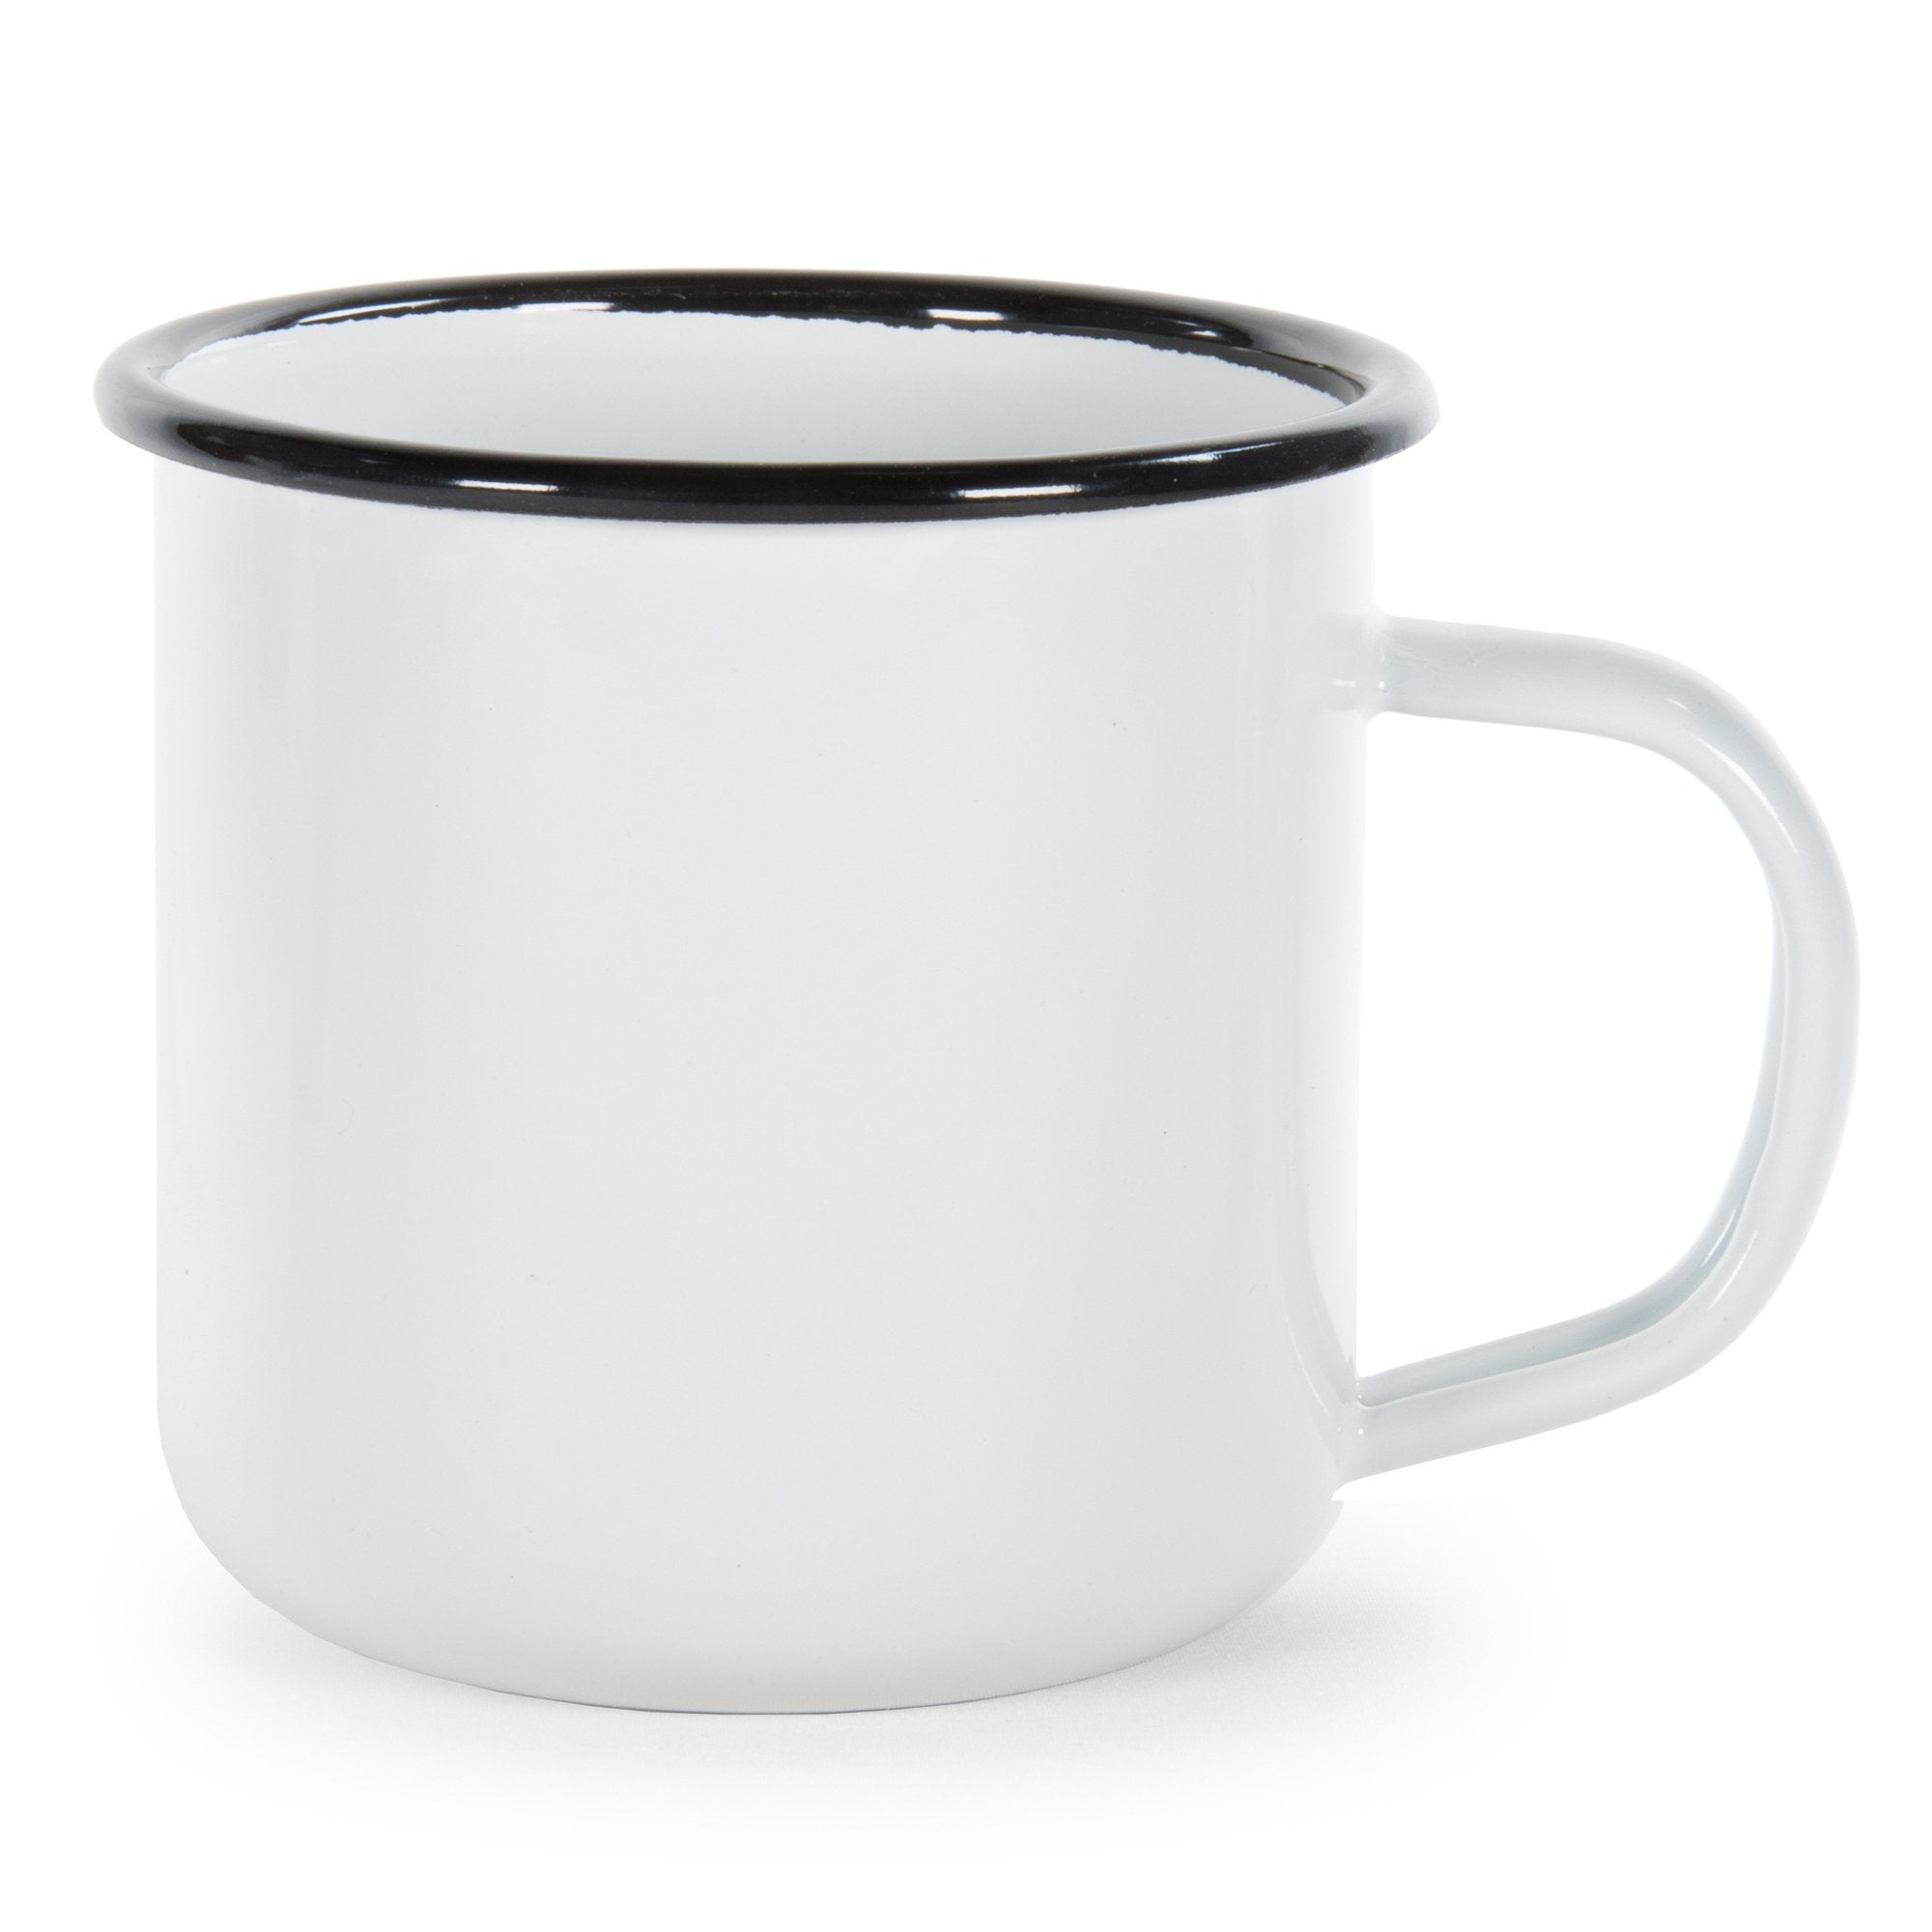 RBW92 - Glampware Mugs - White with  Black Trim  - Set of 4